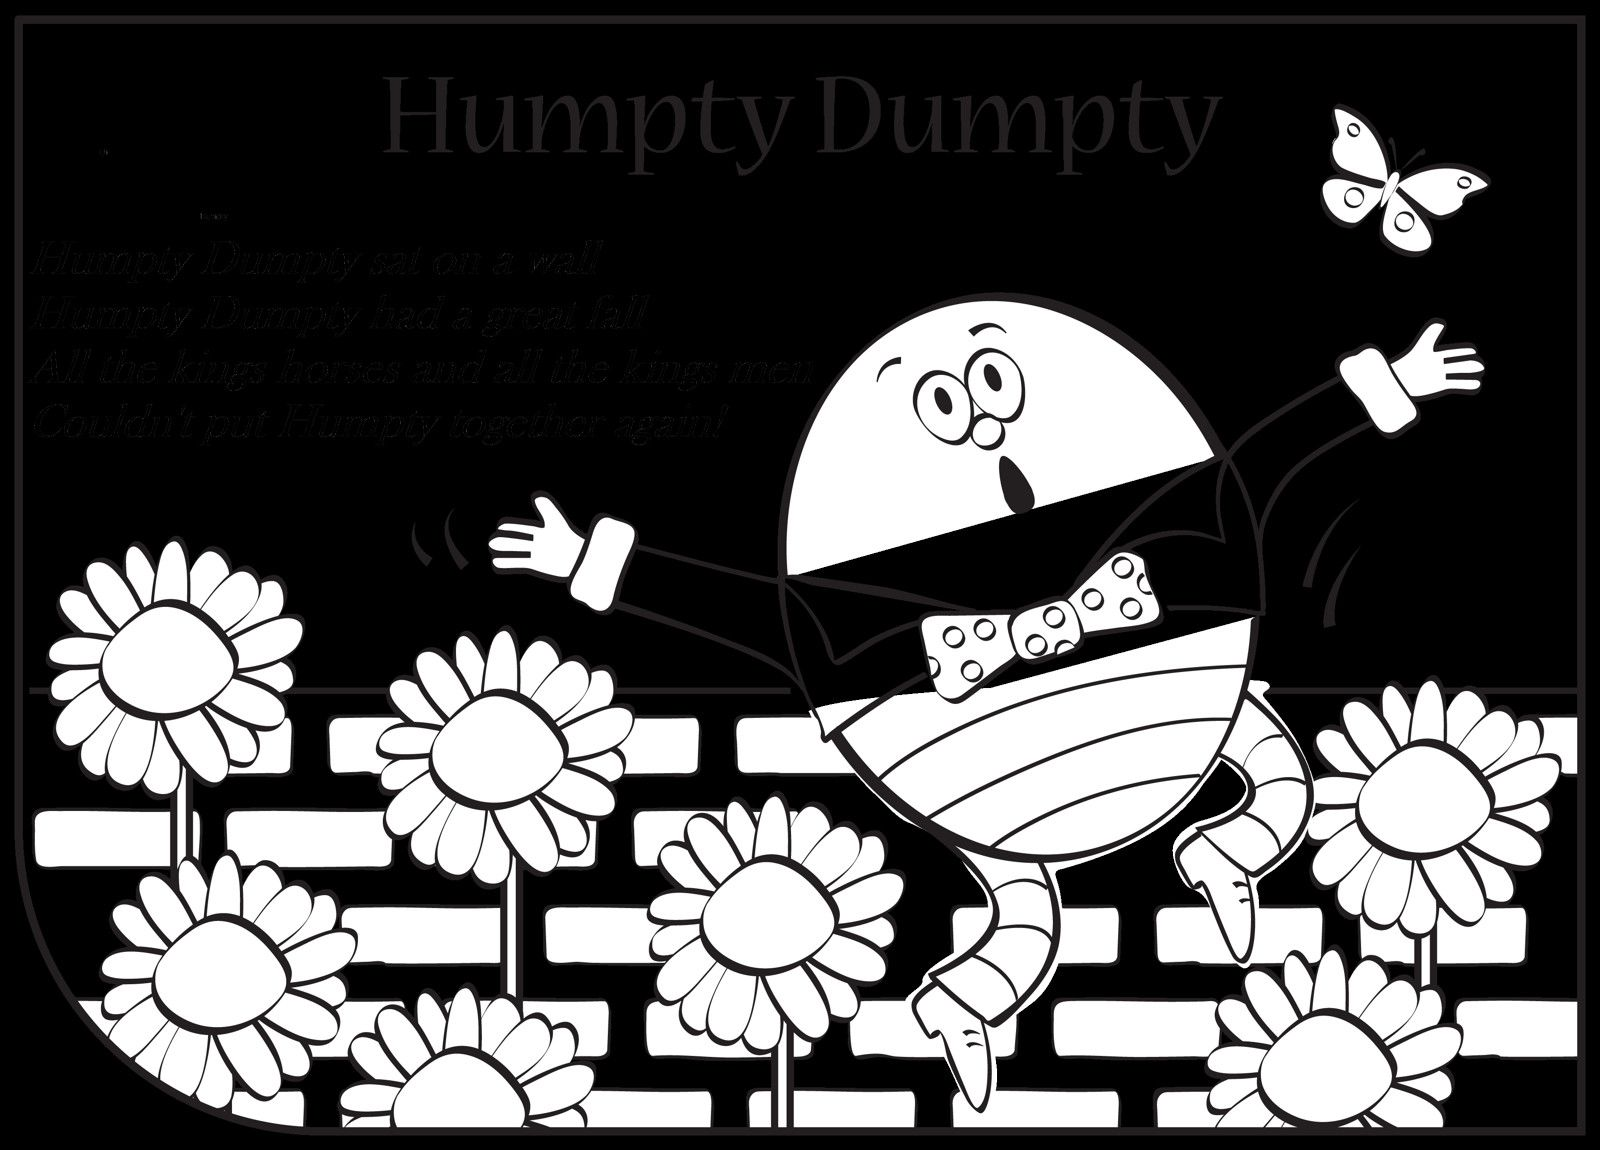 Humpty Dumpty Coloring Page Best Of 100 Humpty Dumpty Coloring Page Yasminroohi In 2020 Coloring Pages Fall Coloring Pages Coloring Pages For Girls